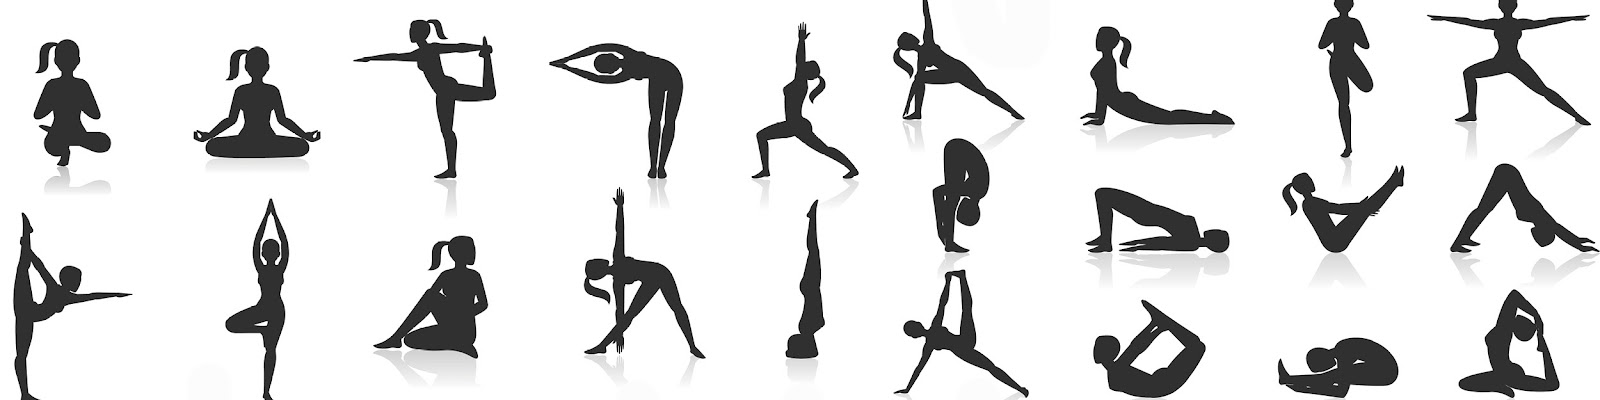 Different Asanas.jpg